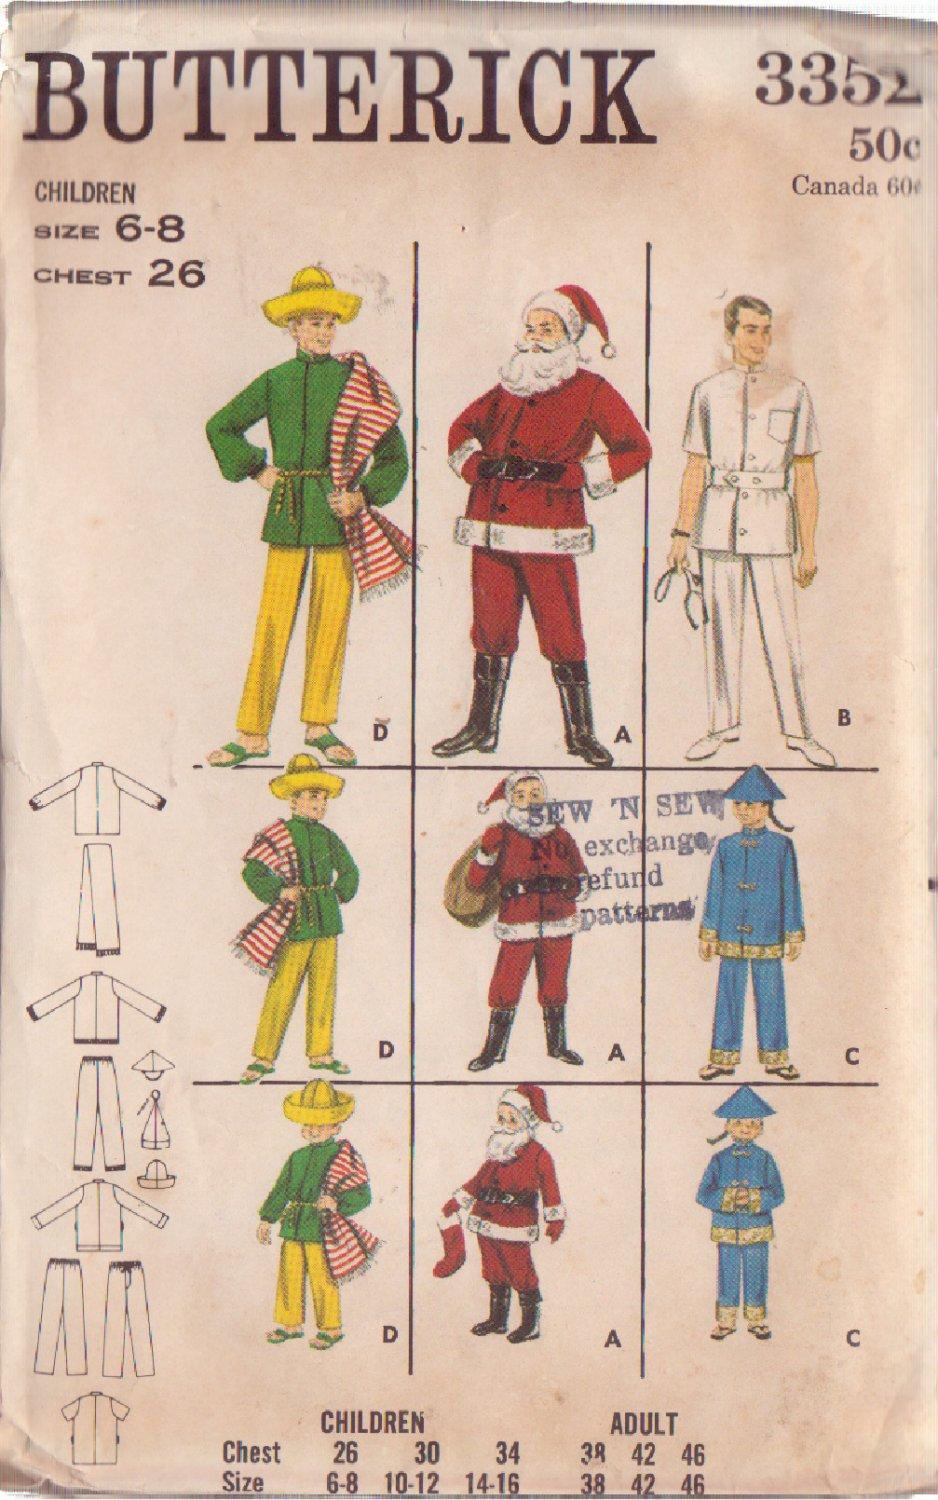 BUTTERICK PTRN 3352 SZ 6/8 CHILD'S COSTUMES SANTA,DOCTOR, CHINAMAN, MEXICAN